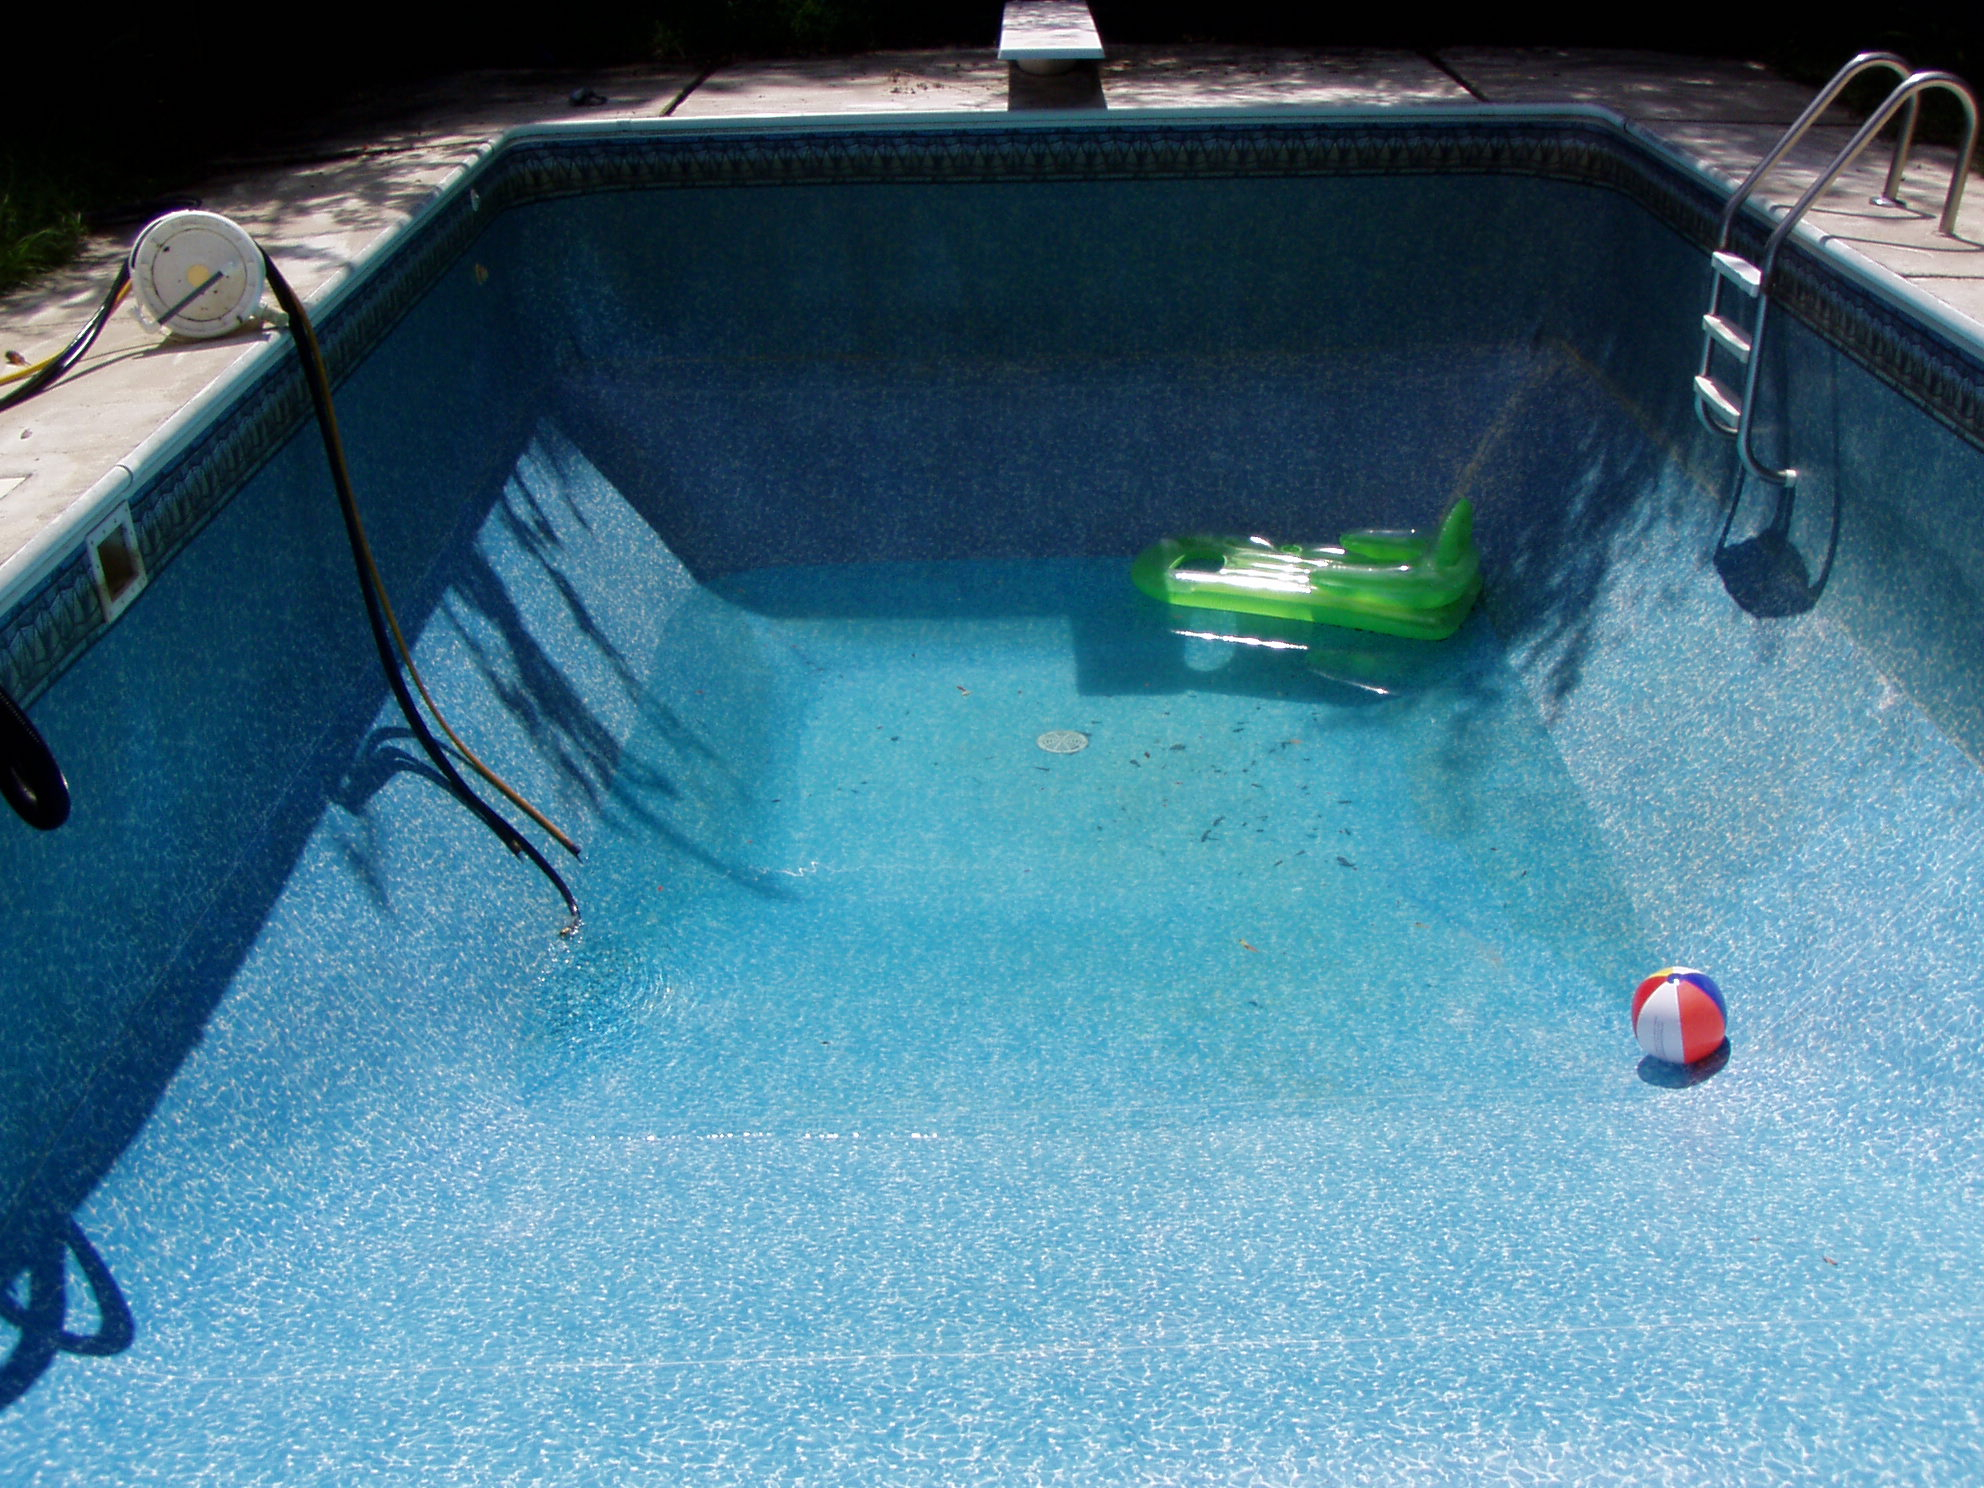 Draining and Refilling an Inground Swimming Pool.: 8 Steps